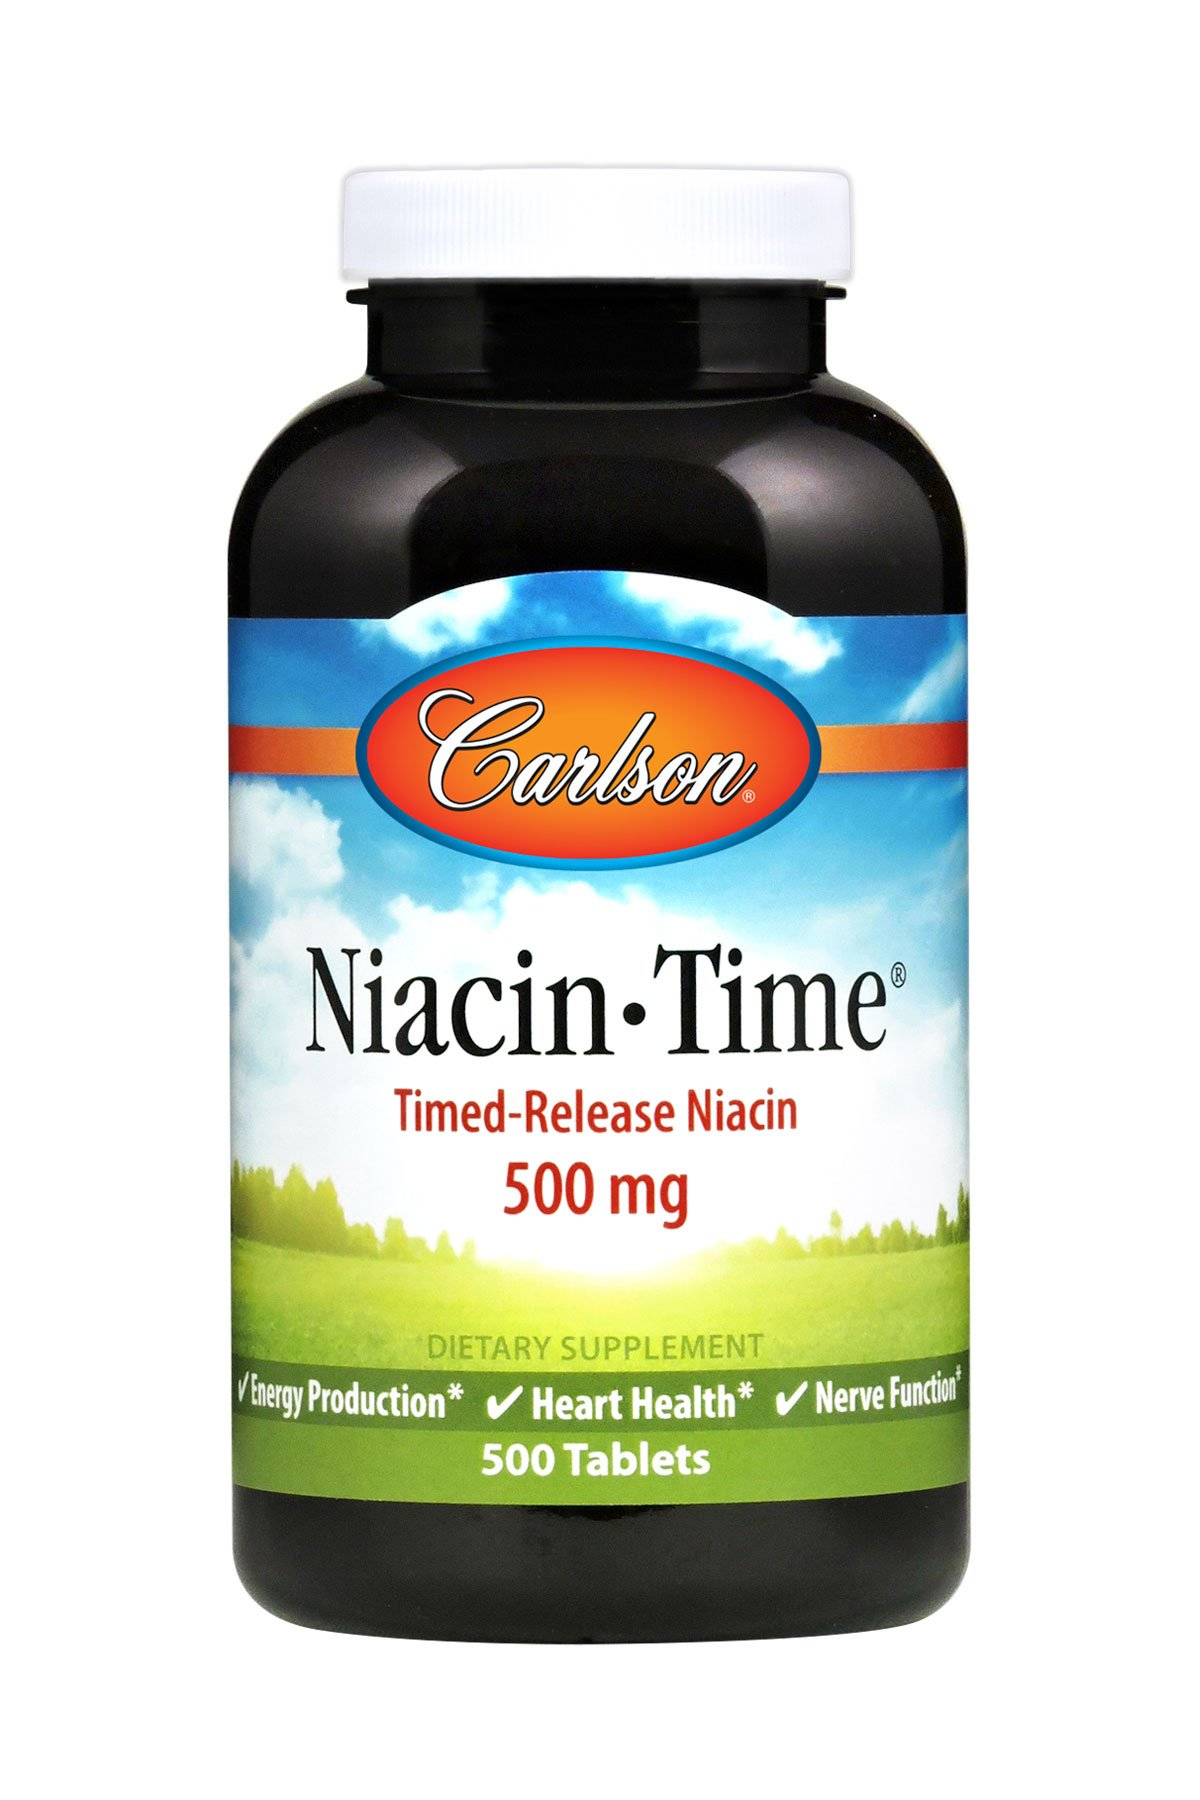 Carlson Niacin-Time 500 mg, Vitamin B-3, Time-Released, 500 Tablets